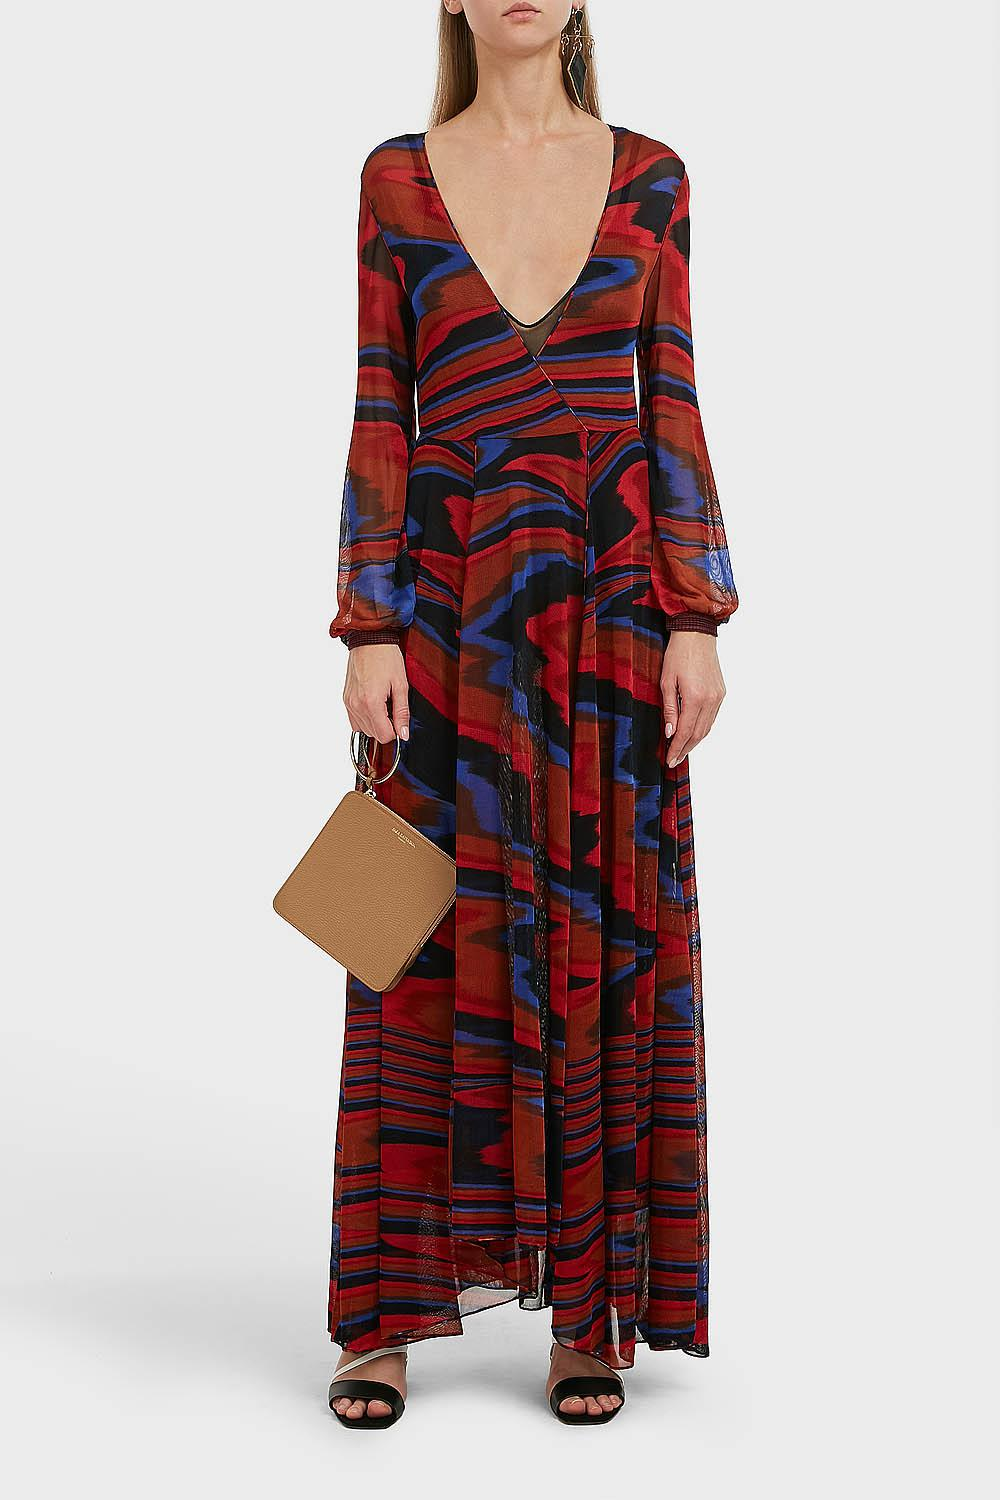 7428186e21c Missoni Asymmetric V-neck Long Sleeve Maxi Dress in Red - Lyst